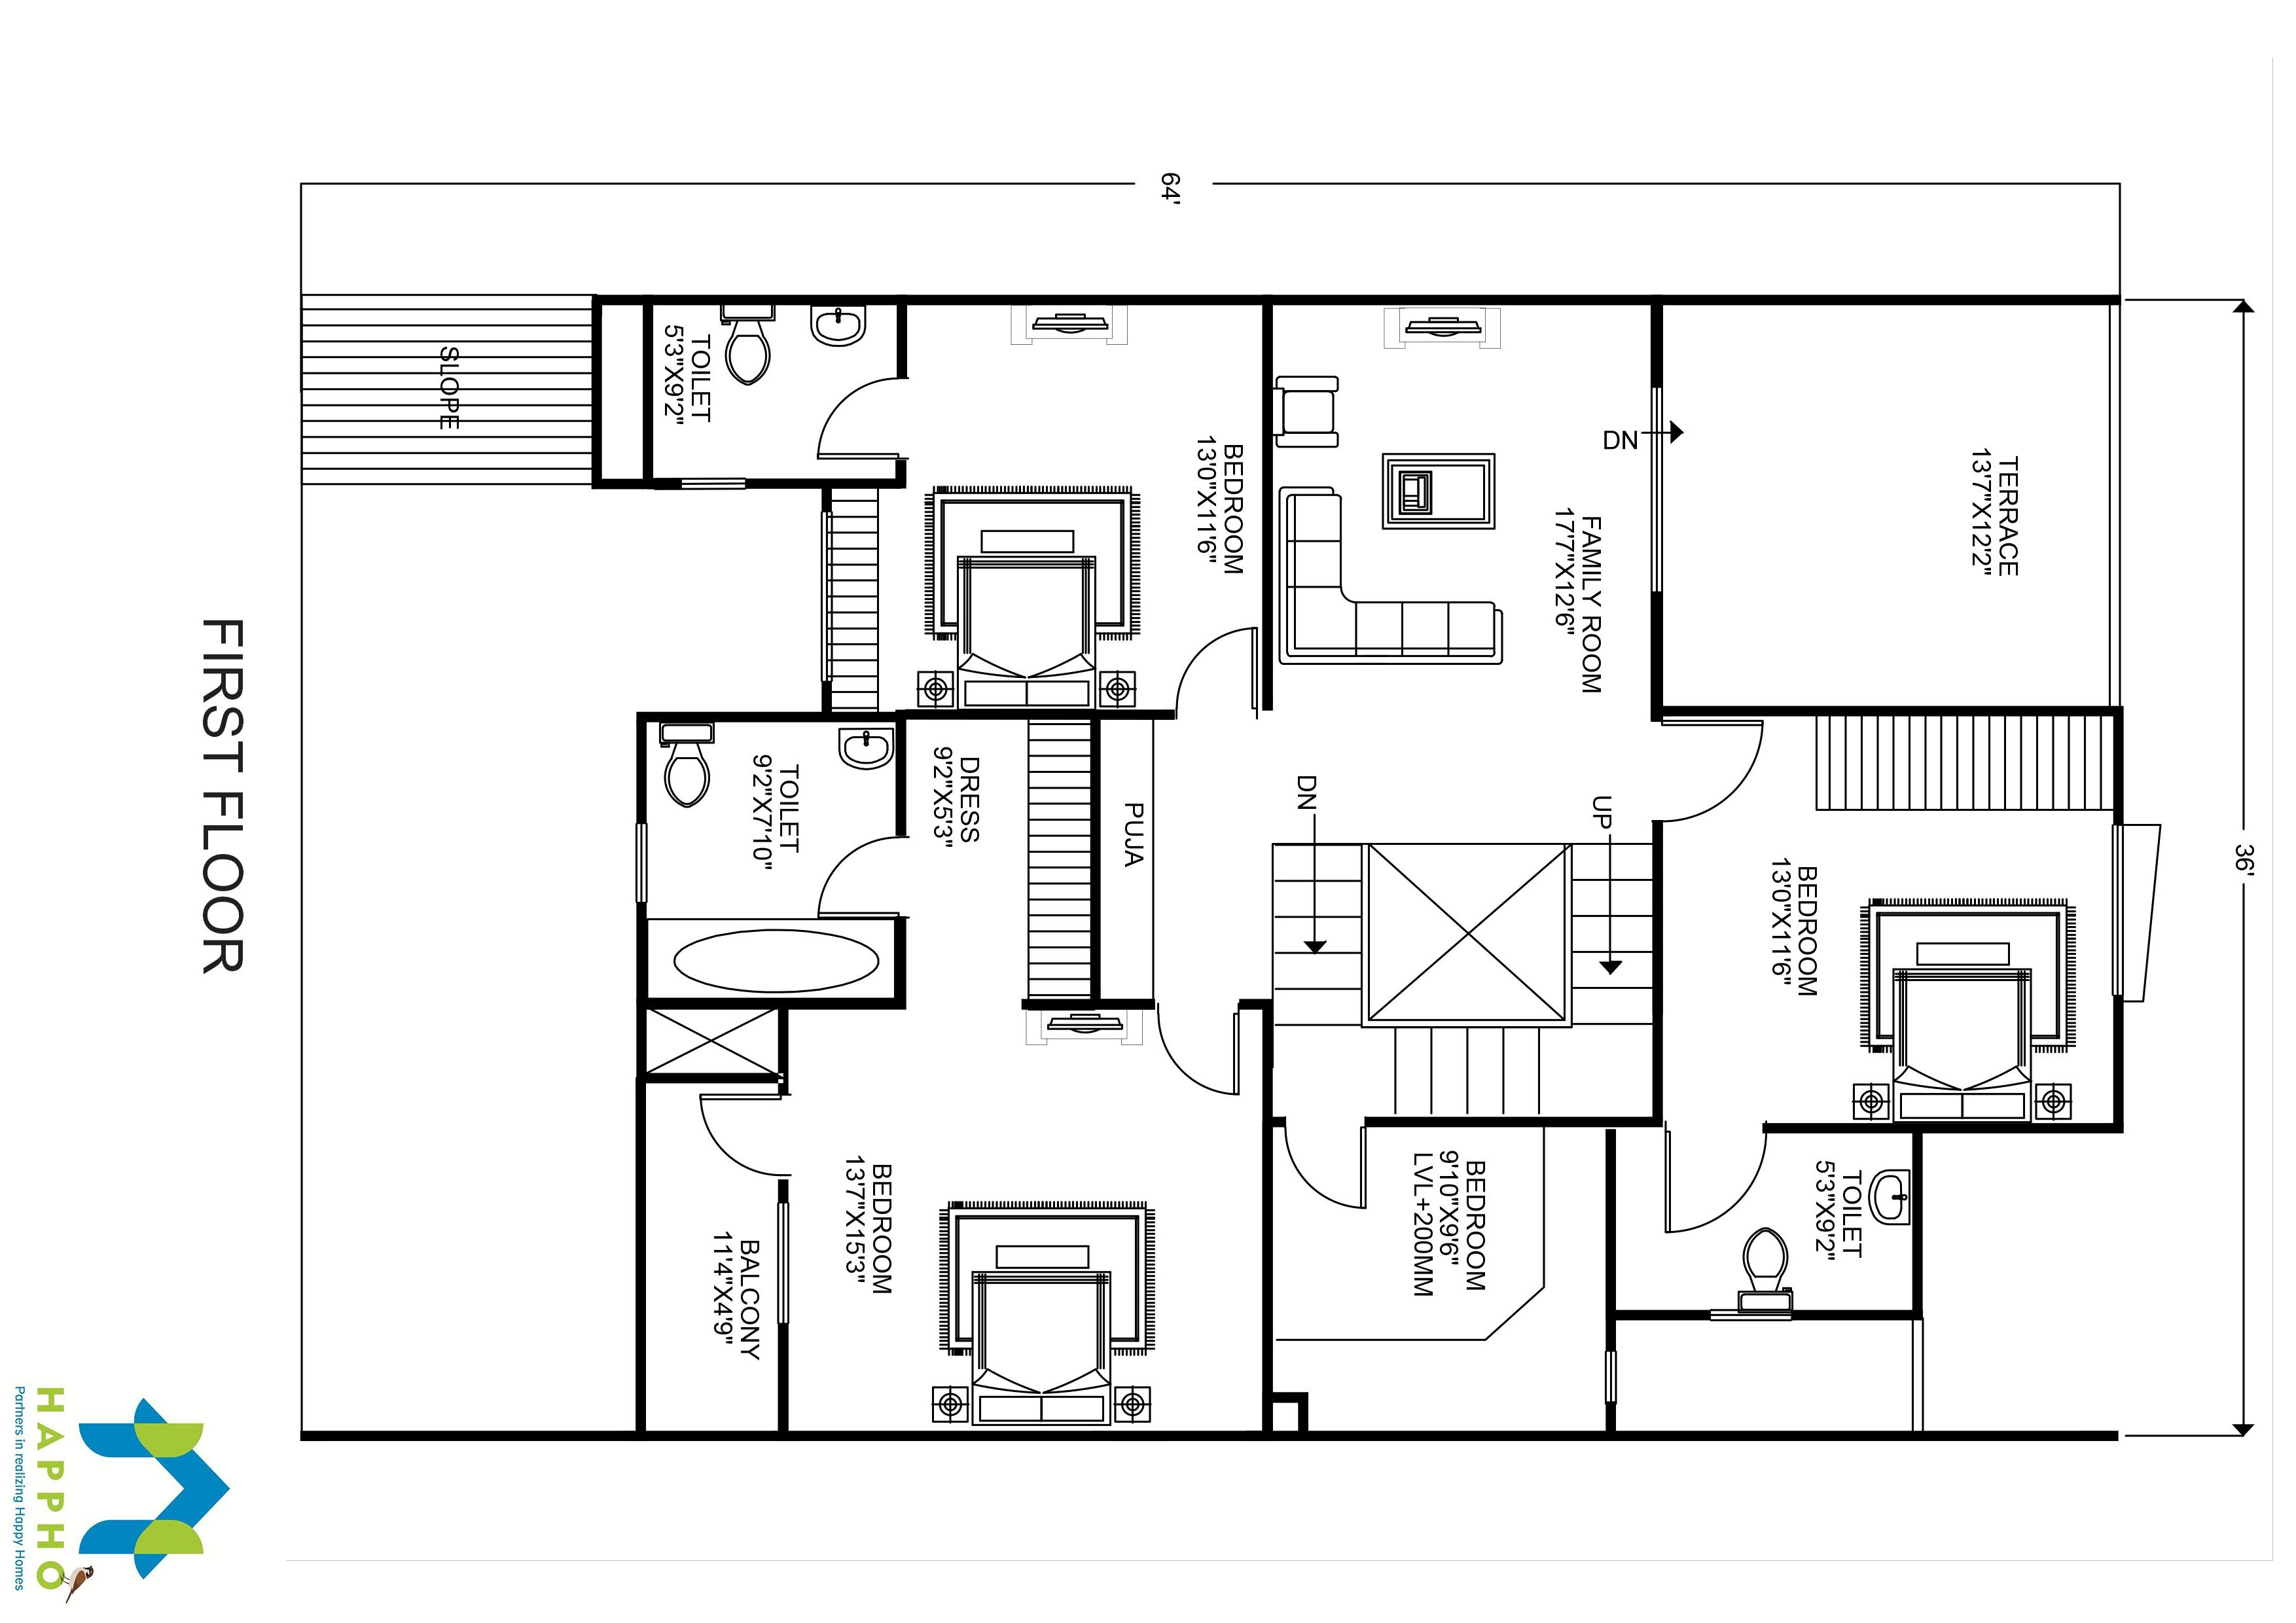 3 bhk floor plan for 65 x 40 plot 2600 square feet 289 for 2600 square foot house plans